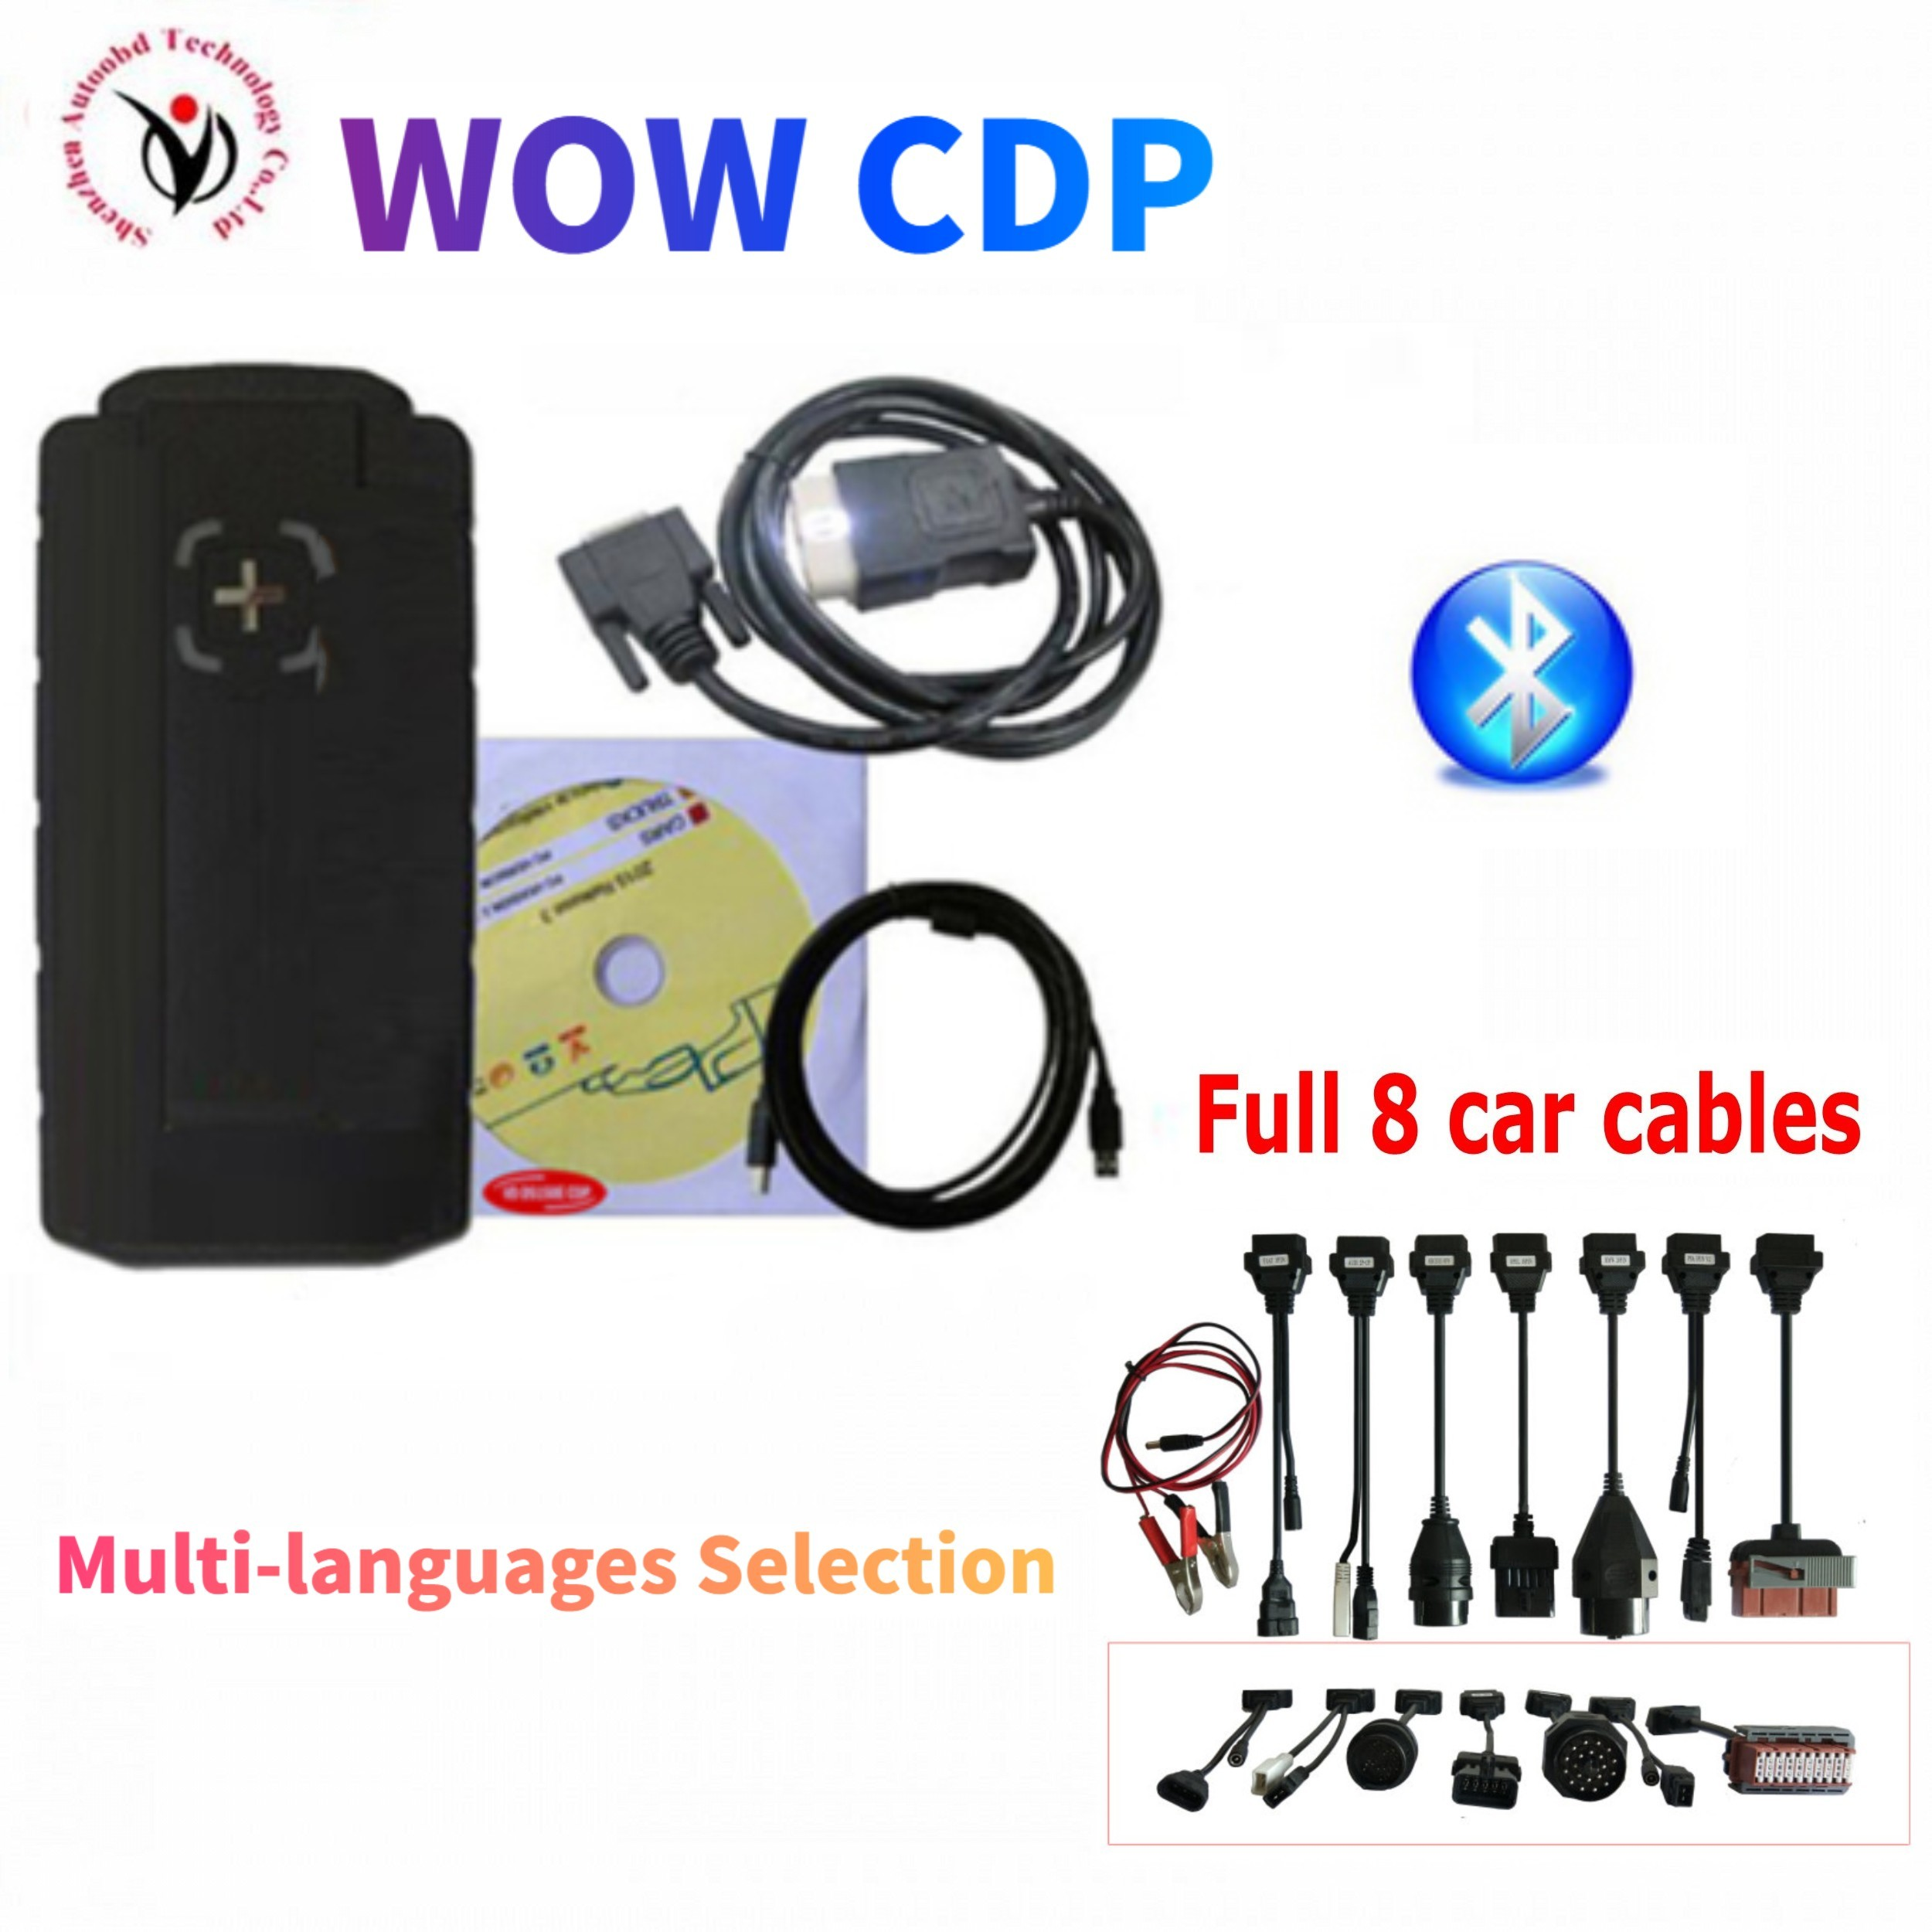 2020 Latest WOW CDP Vd Ds150e Cdp Pro Plus With Bluetooth V5.00812/2016.R0 Keygen On Cd For Delphis Obd2 Car Truck Scanner Tool